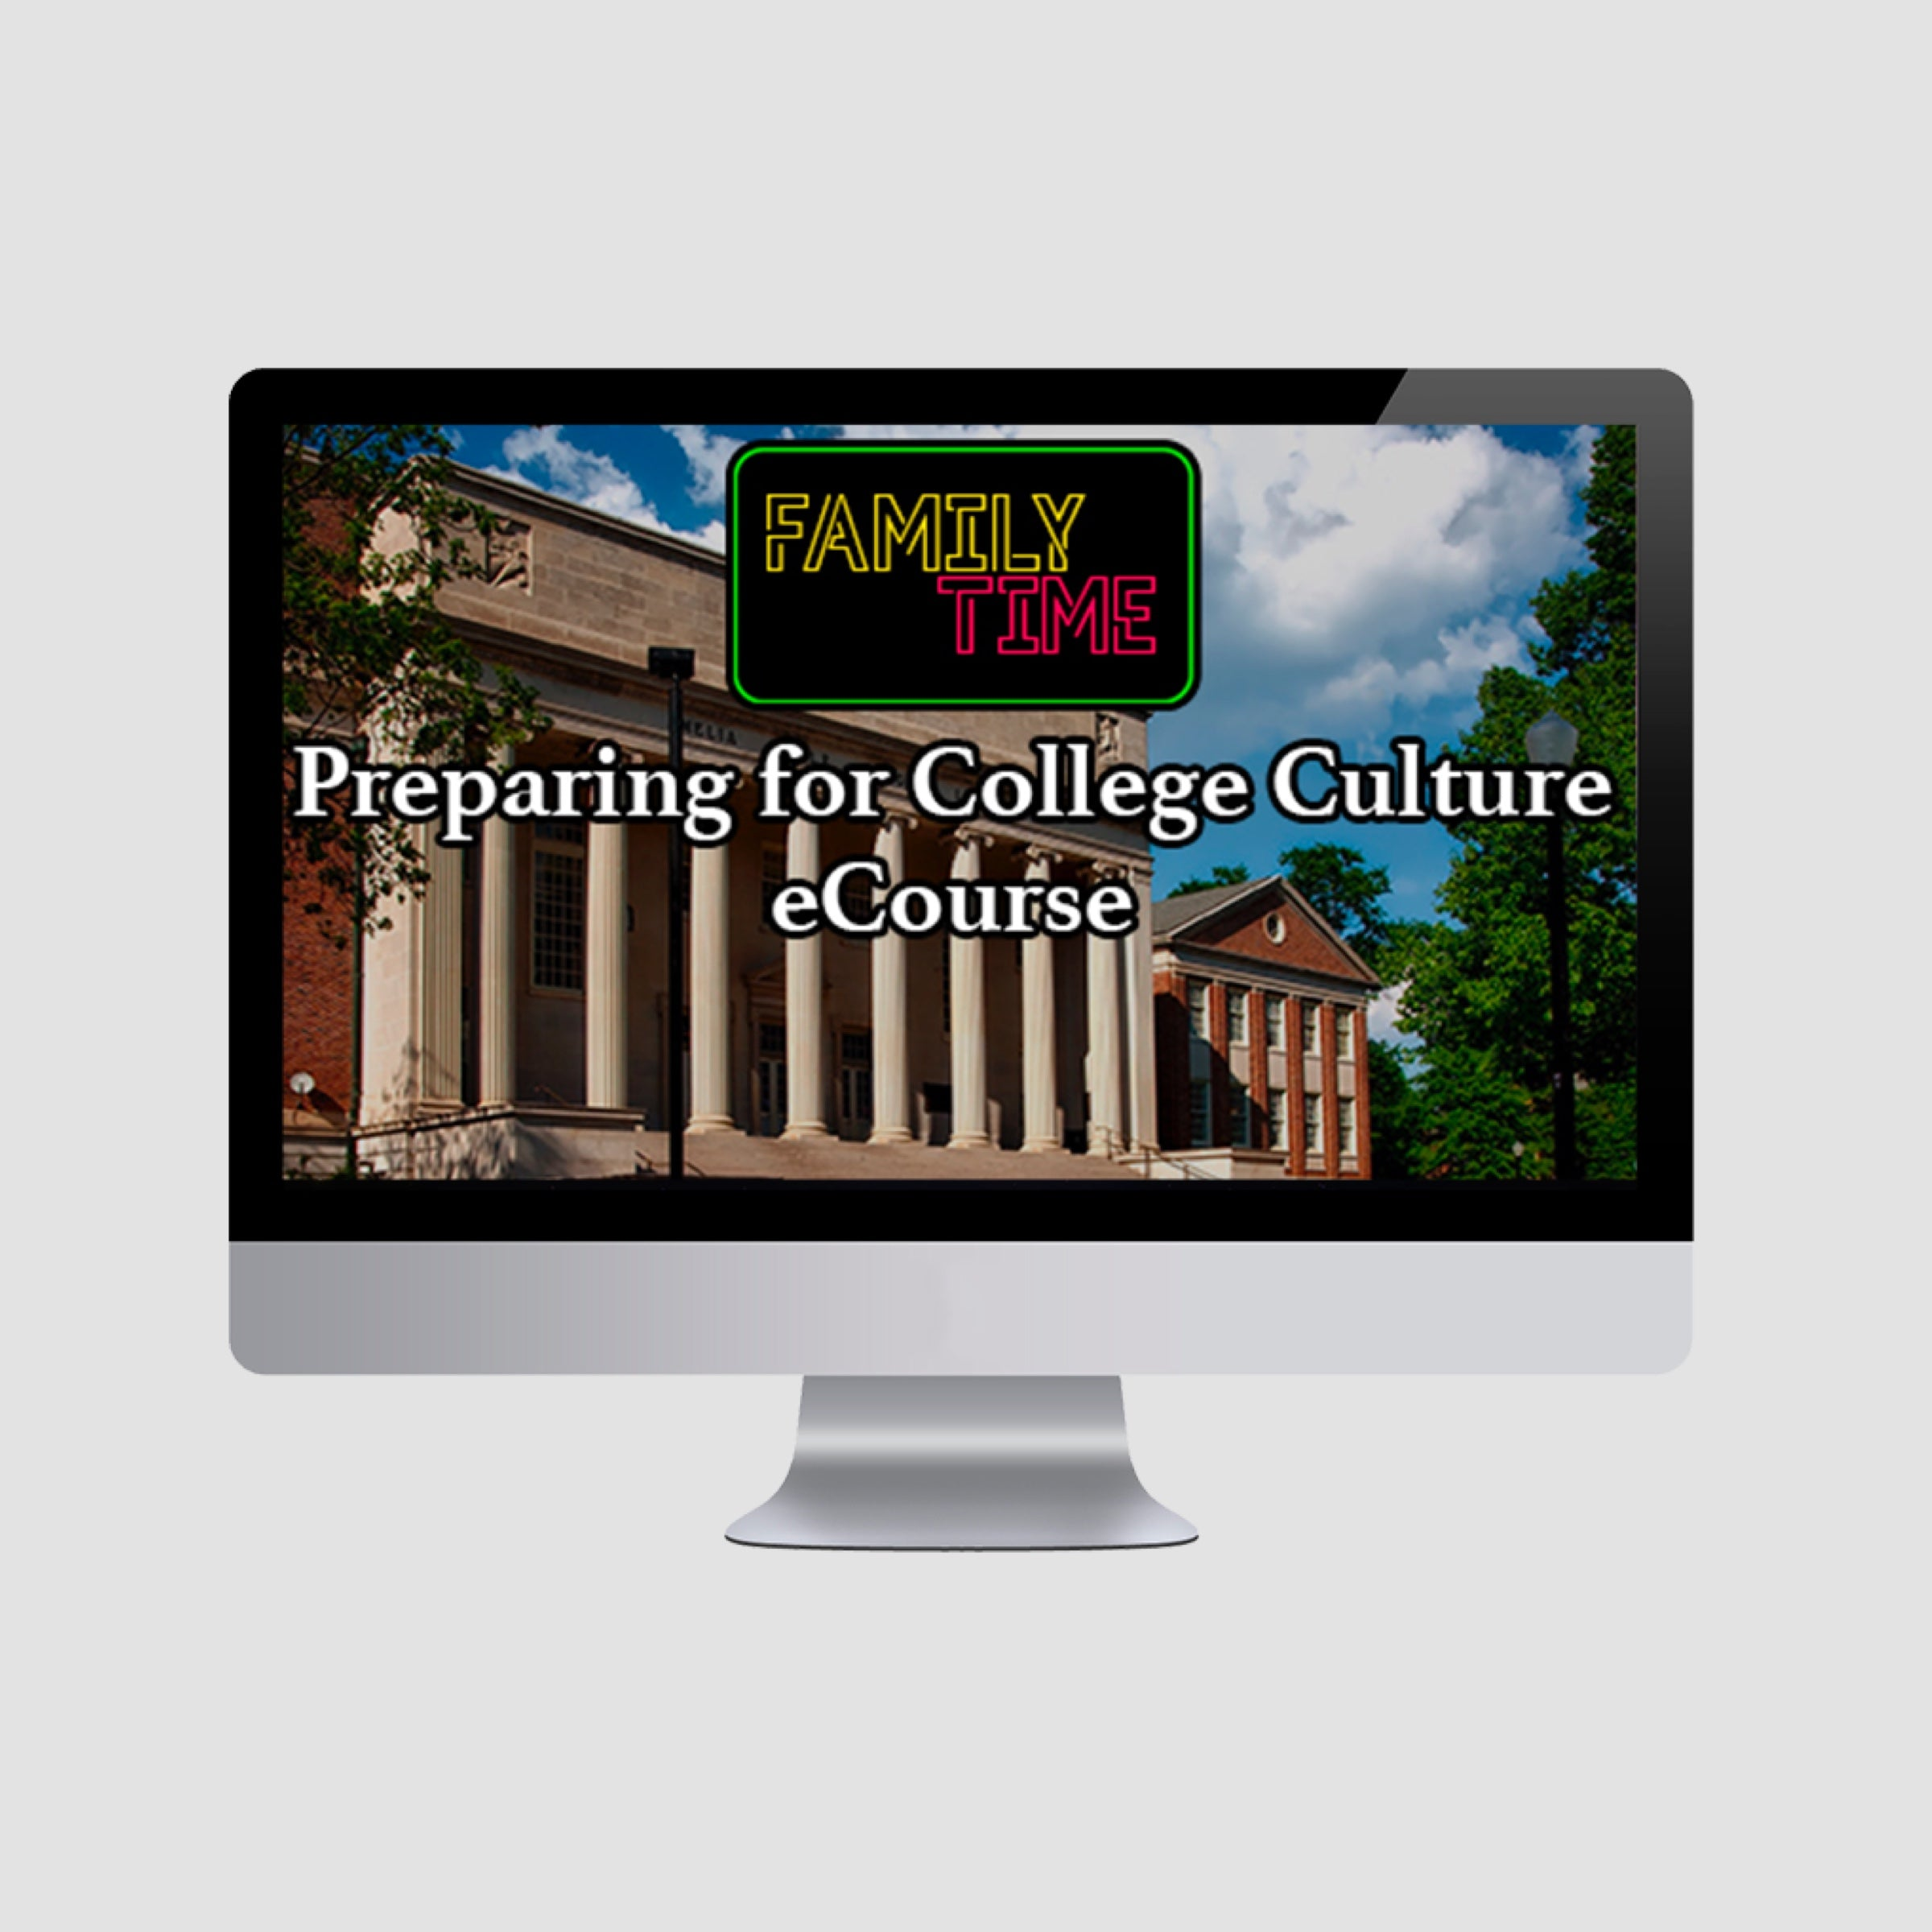 Family Time: Preparing for College Culture E-Course